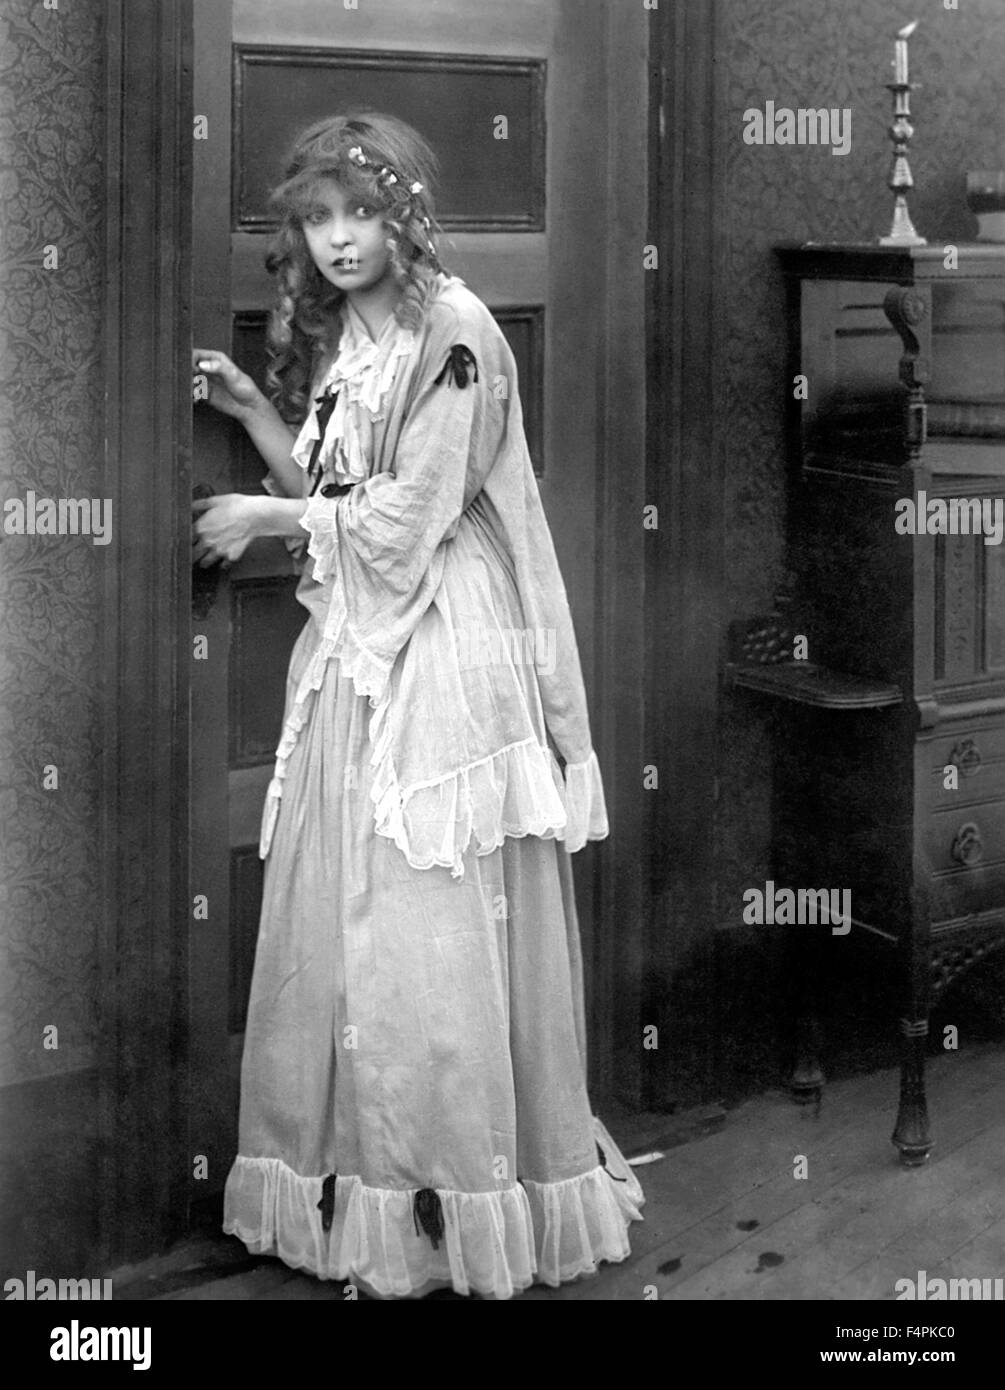 Lillian Gish / The Birth of a Nation / 1915 directed by D.W. Griffith [Epoch Producing Corporation] - Stock Image